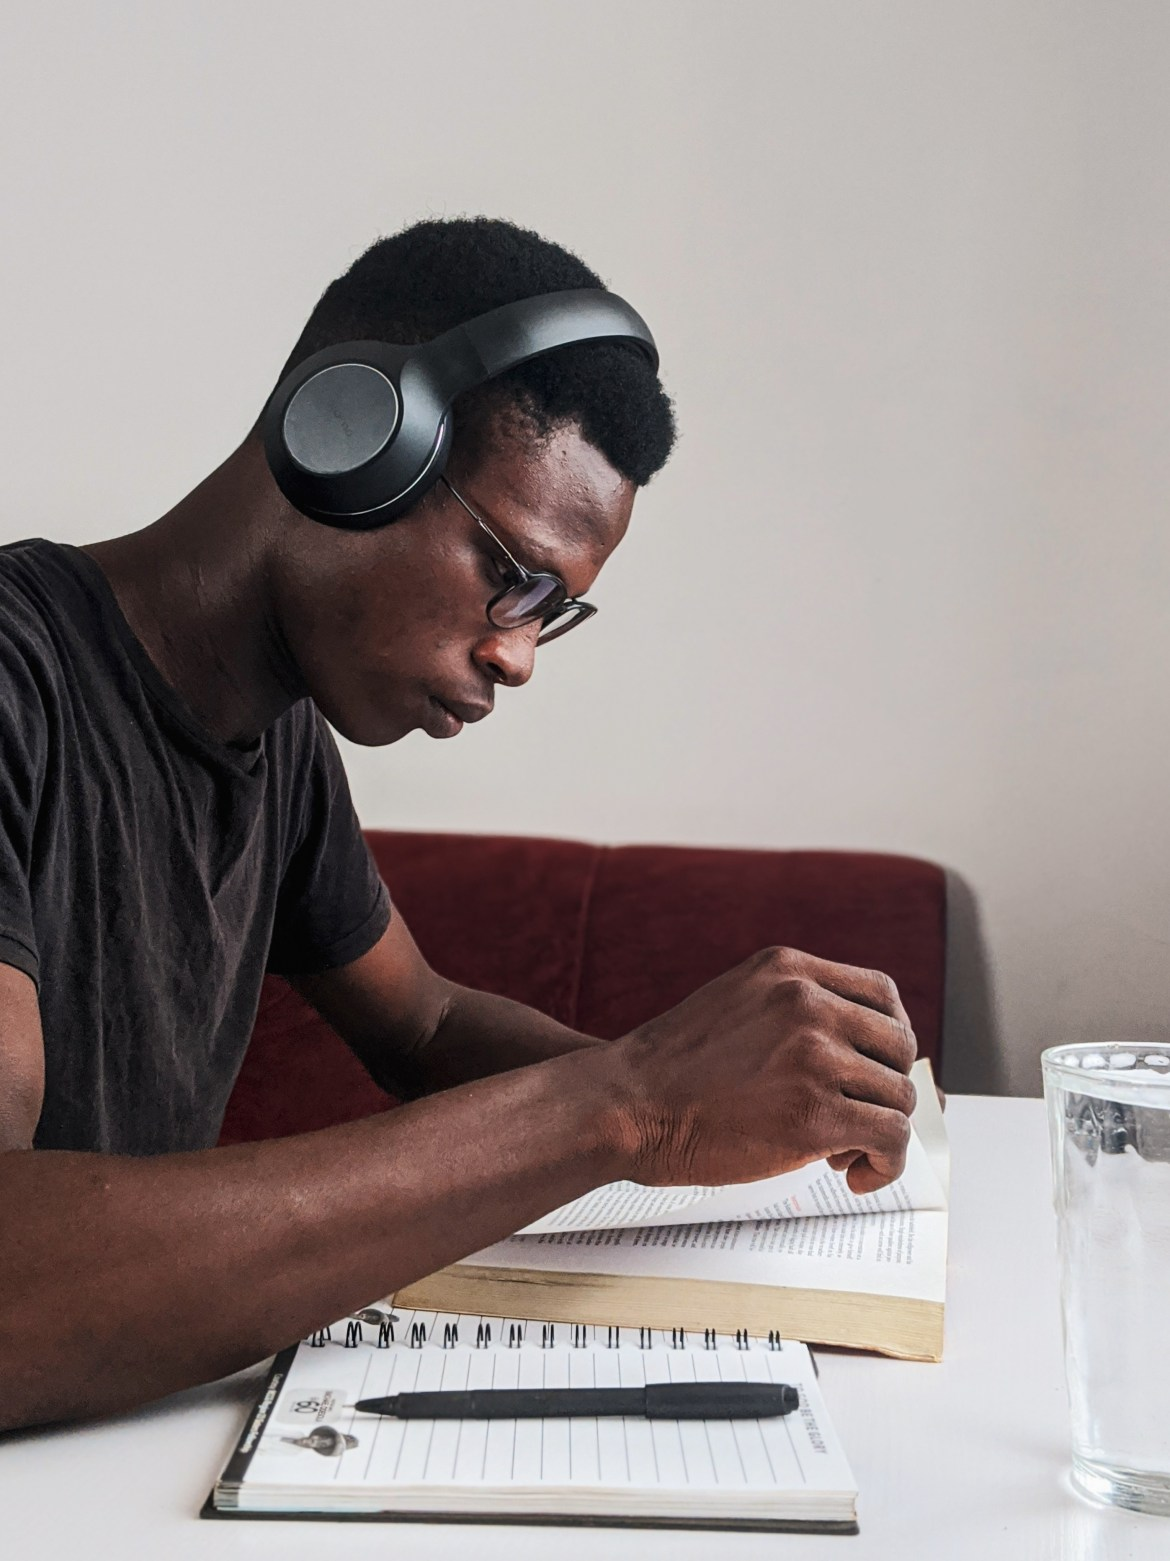 Man Wearing Black Crew-neck T-shirt Using Black Headphones Reading Book While Sitting